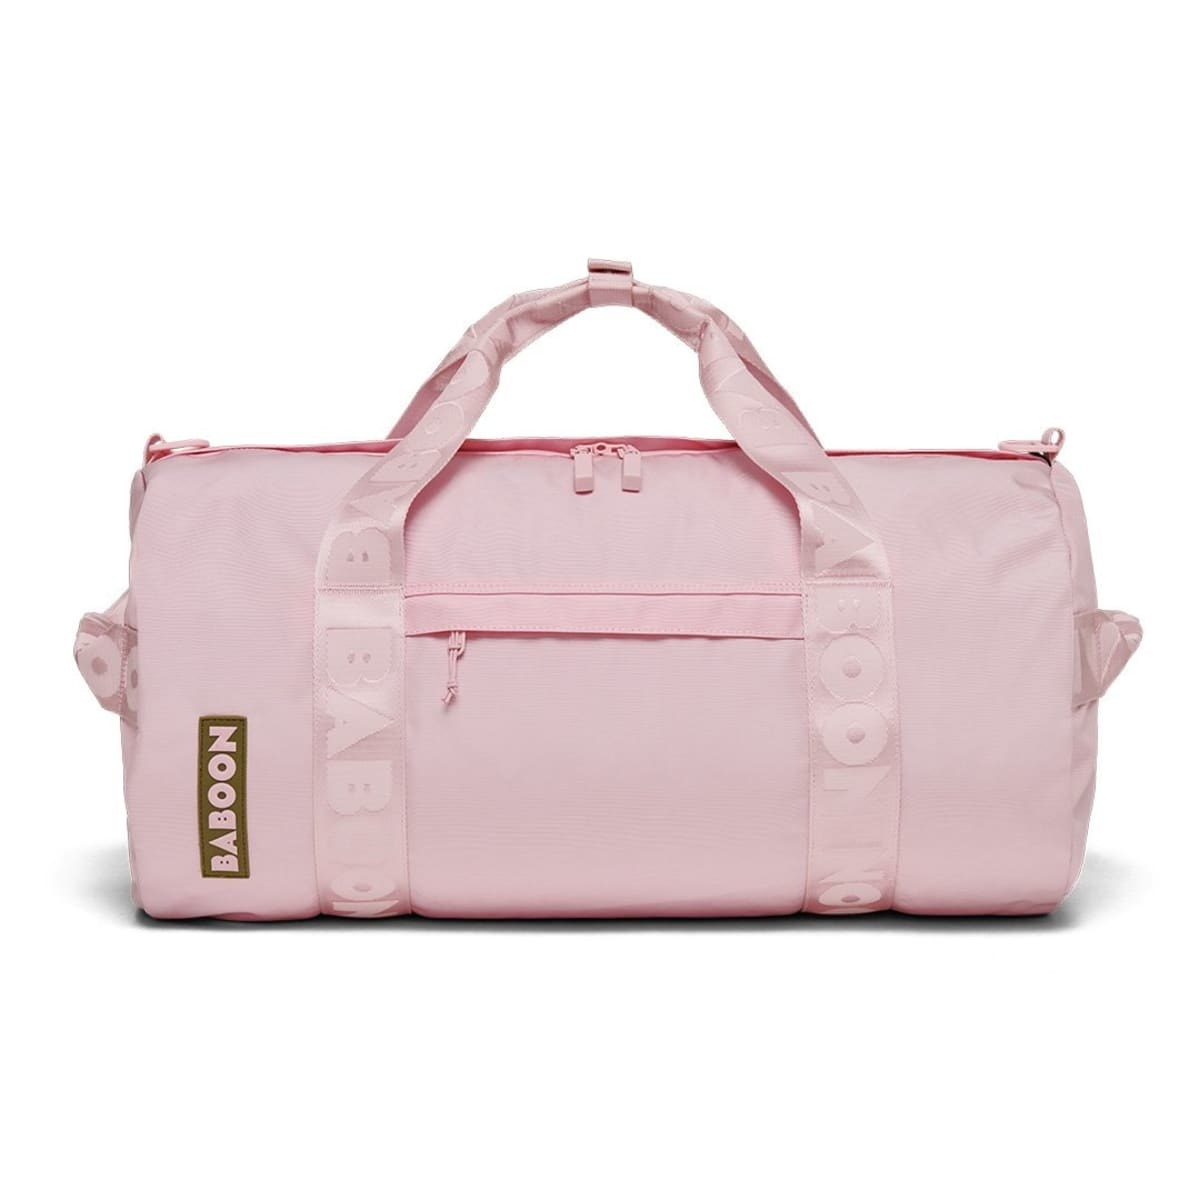 pink duffel bag with outside pocket